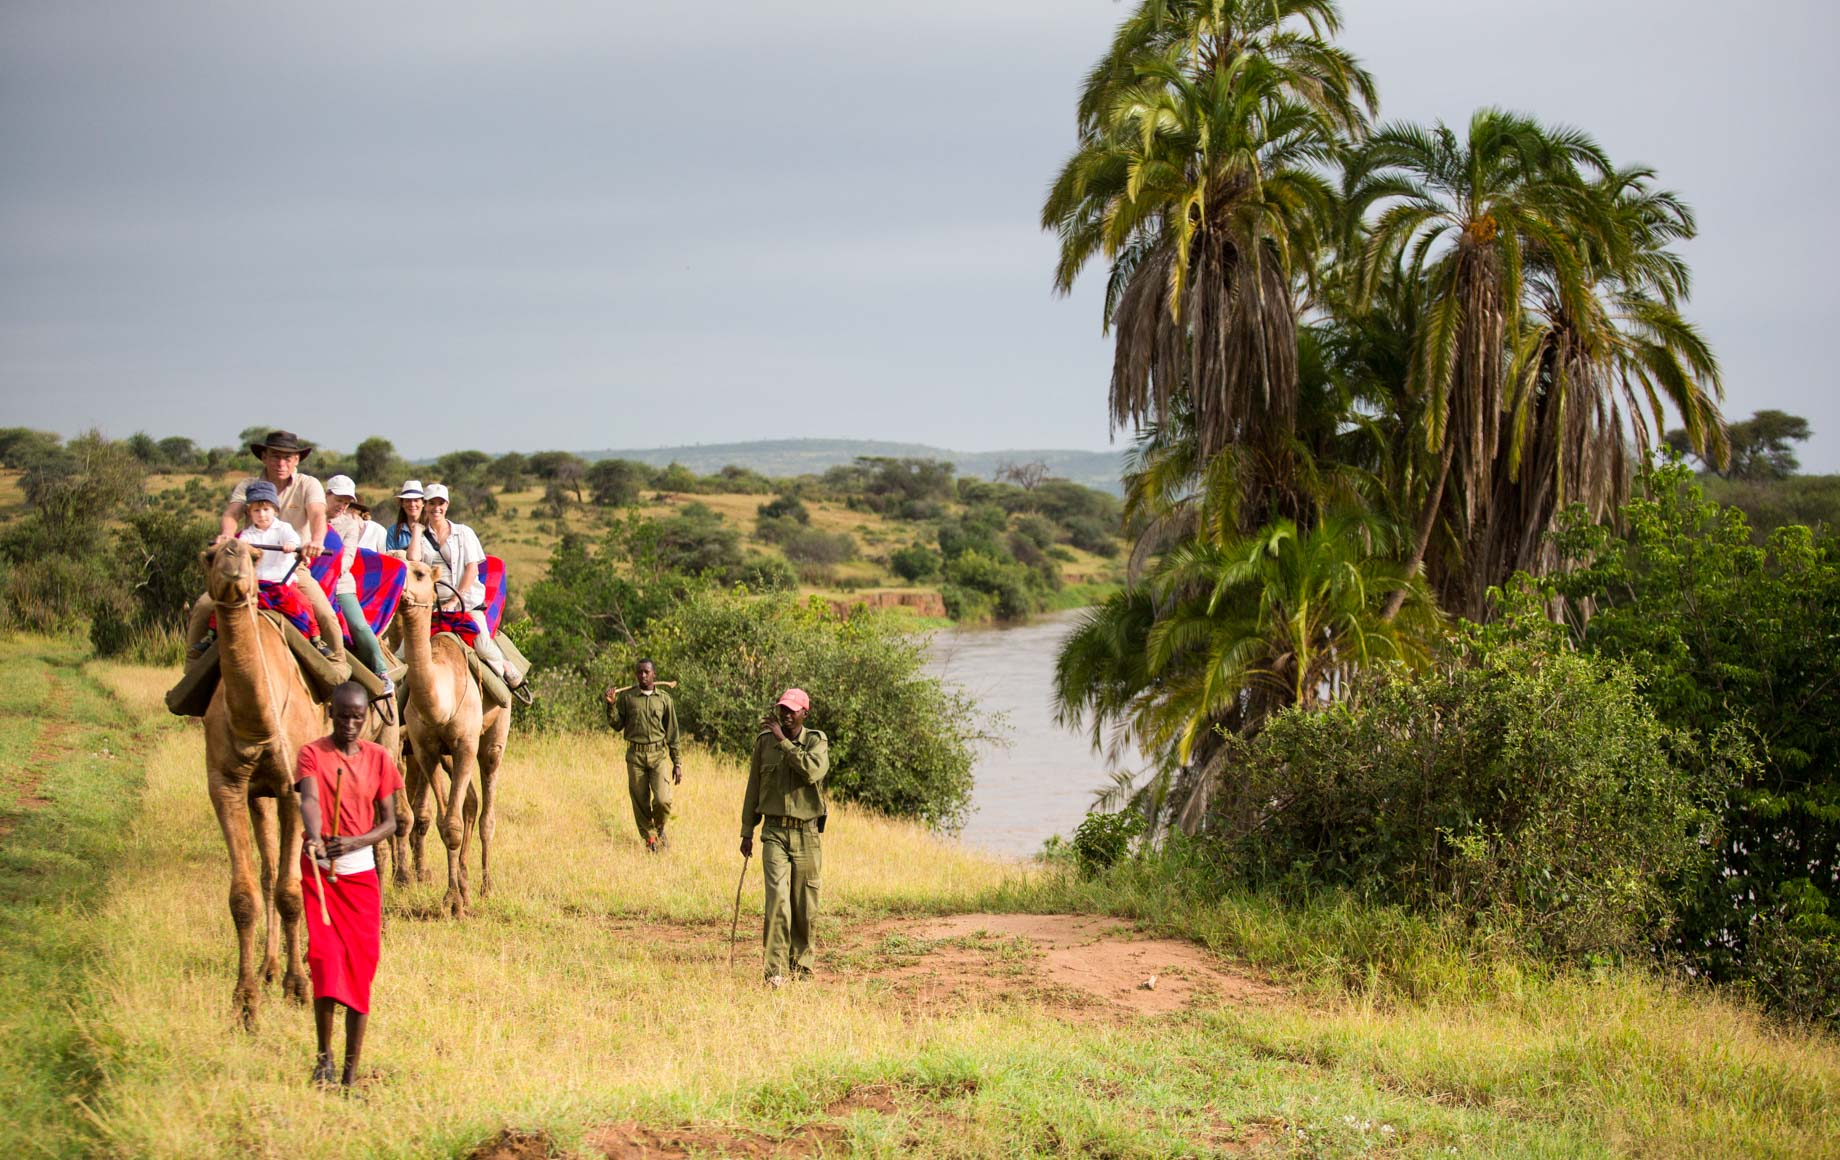 Guides and locals on horseback in Loisaba Conservancy